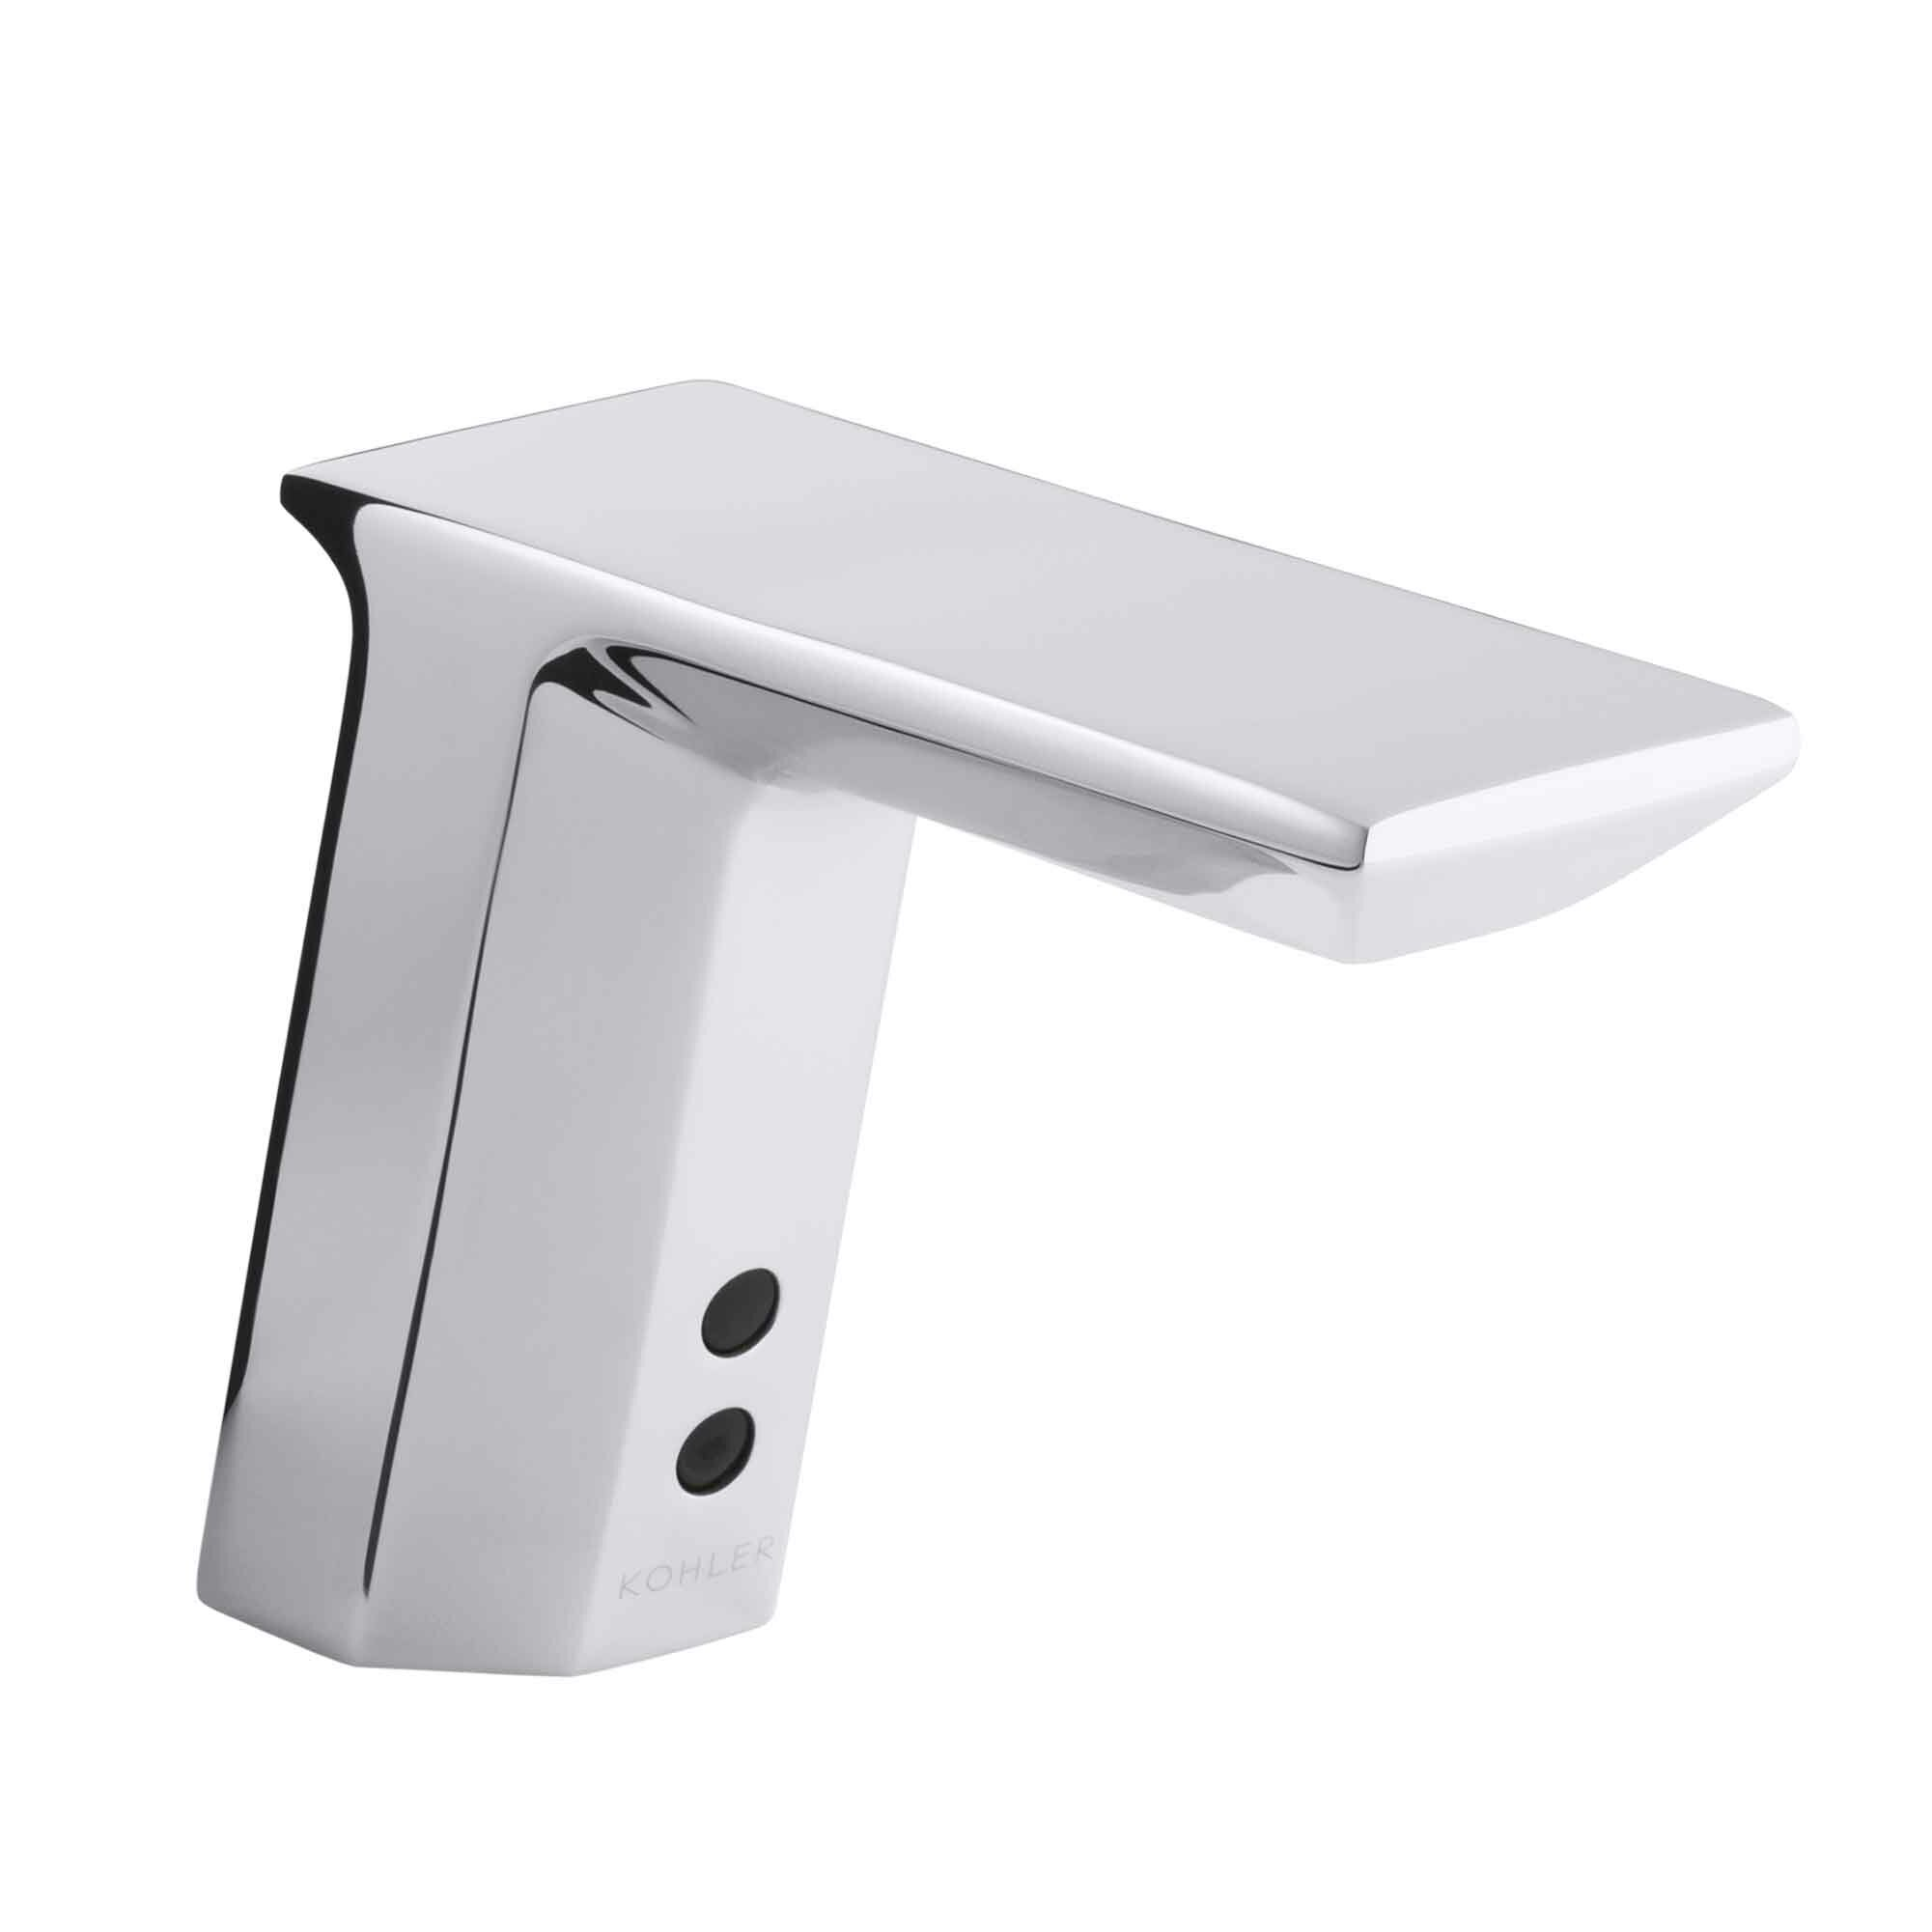 KCPVS Kohler Geometric SingleHole Touchless DcPowered - Commercial bathroom faucets touchless